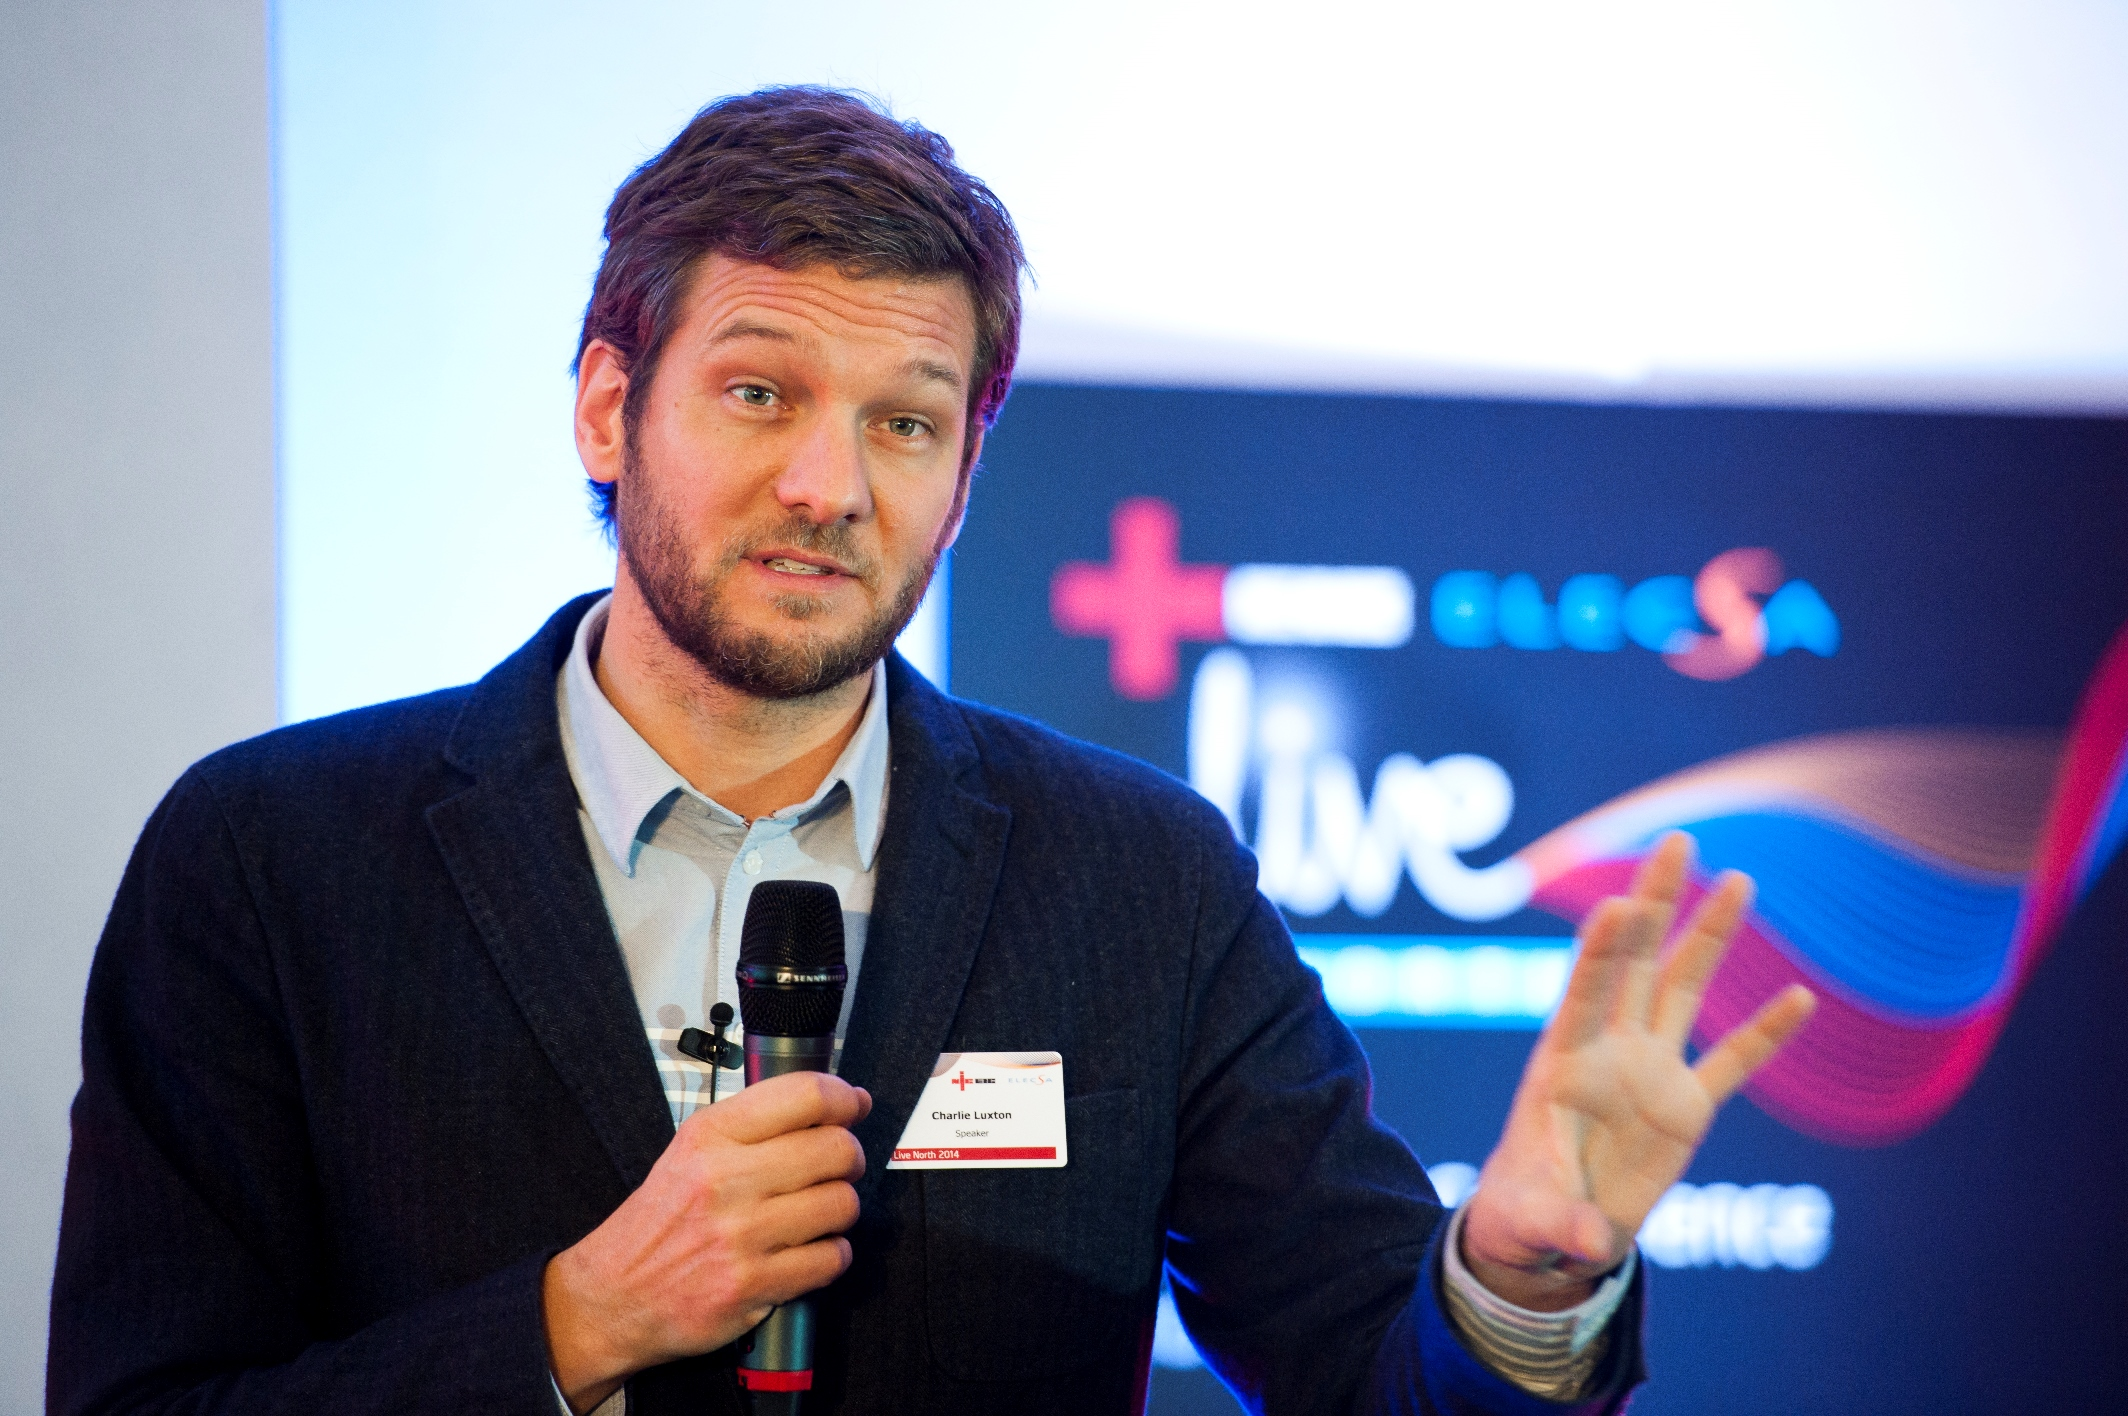 Tv presenter charlie luxton heads line up at live south - Charlie luxton ...